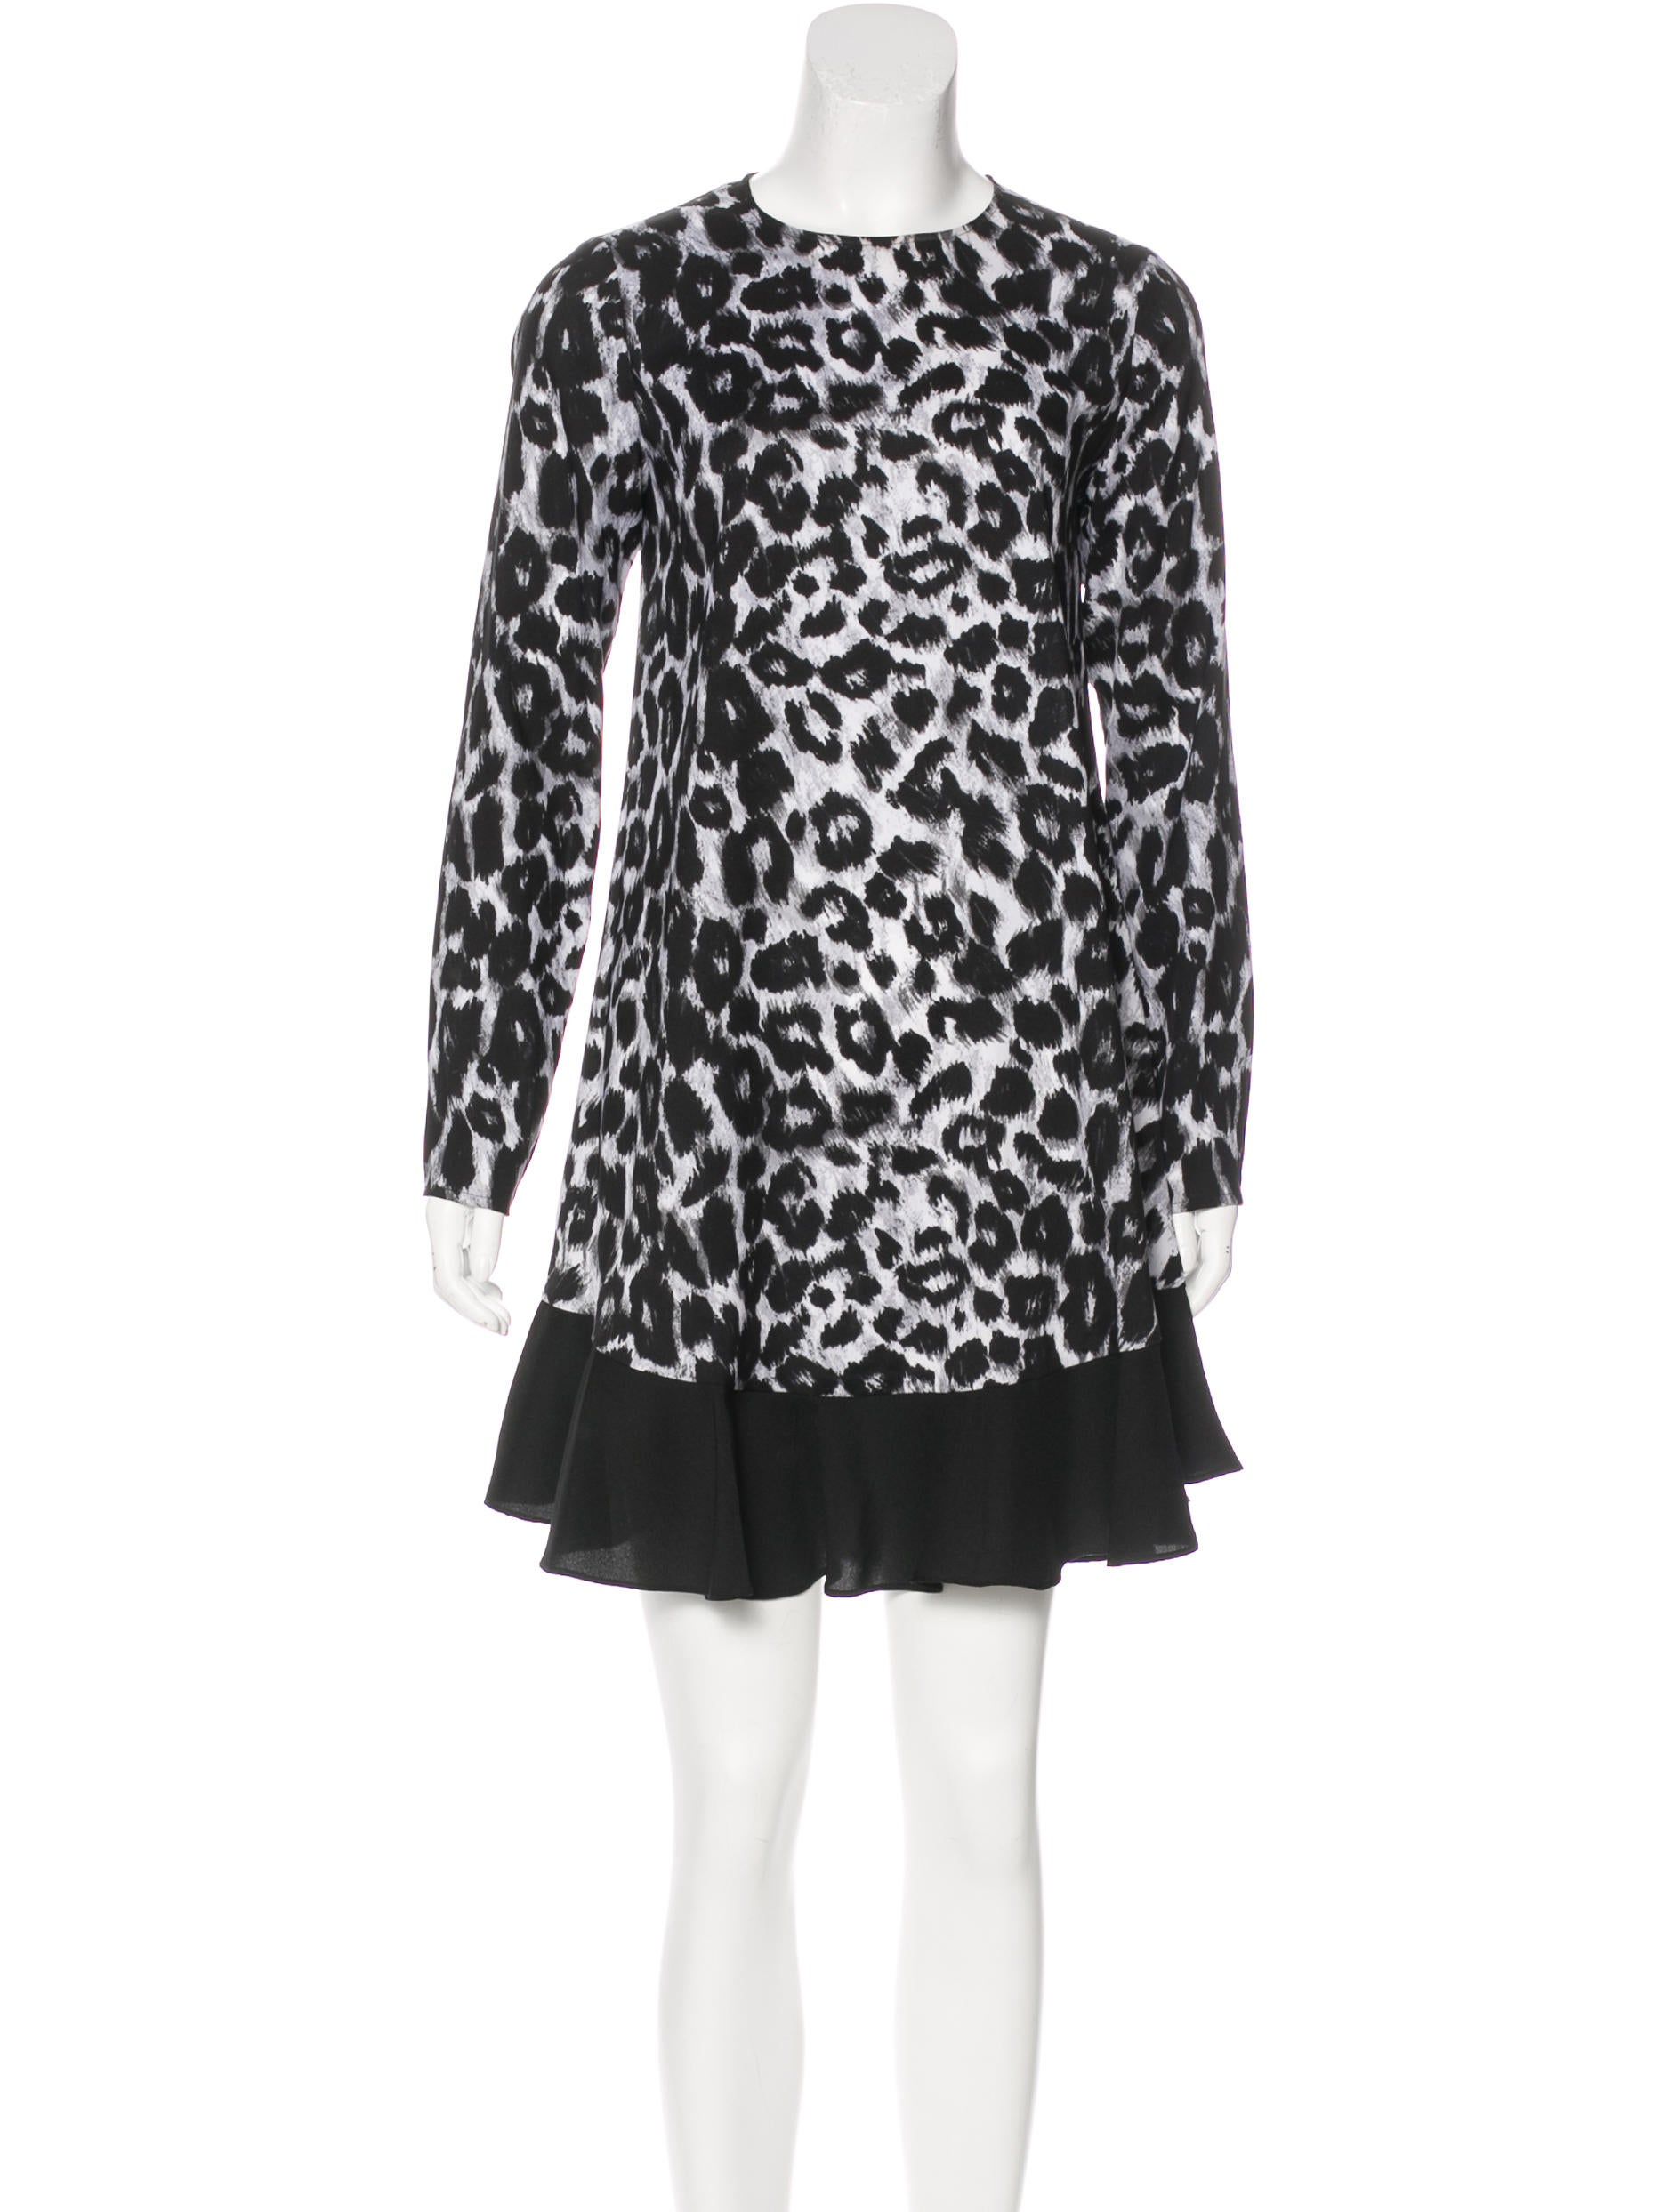 a963da0deae5 Rachel Zoe Animal Print Mini Dress - Clothing - WRL29516 | The RealReal